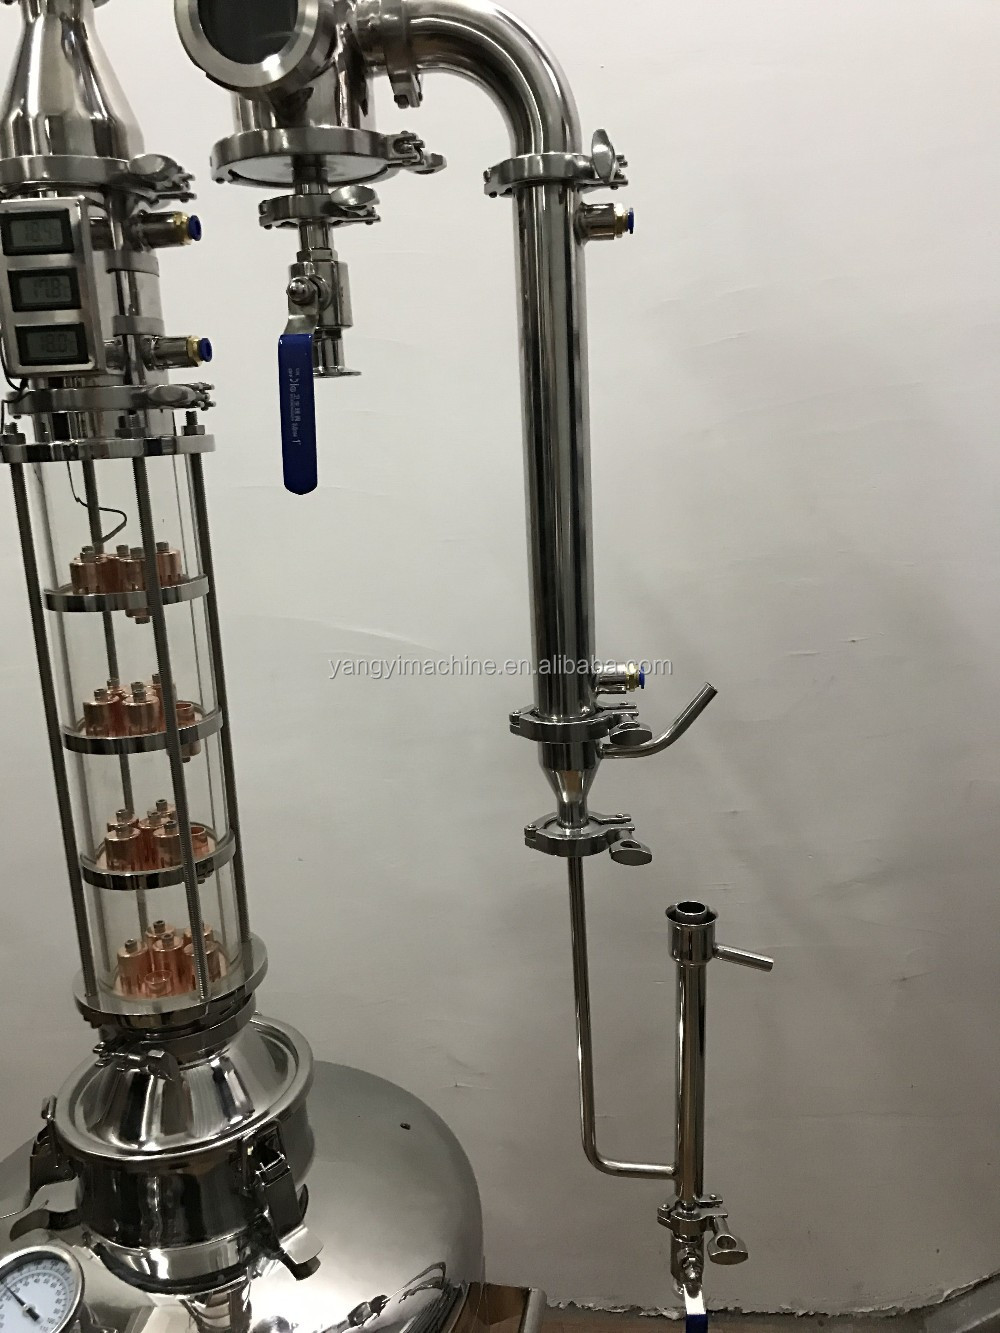 New Type Glass Distillation Column Pot Still Alcohol